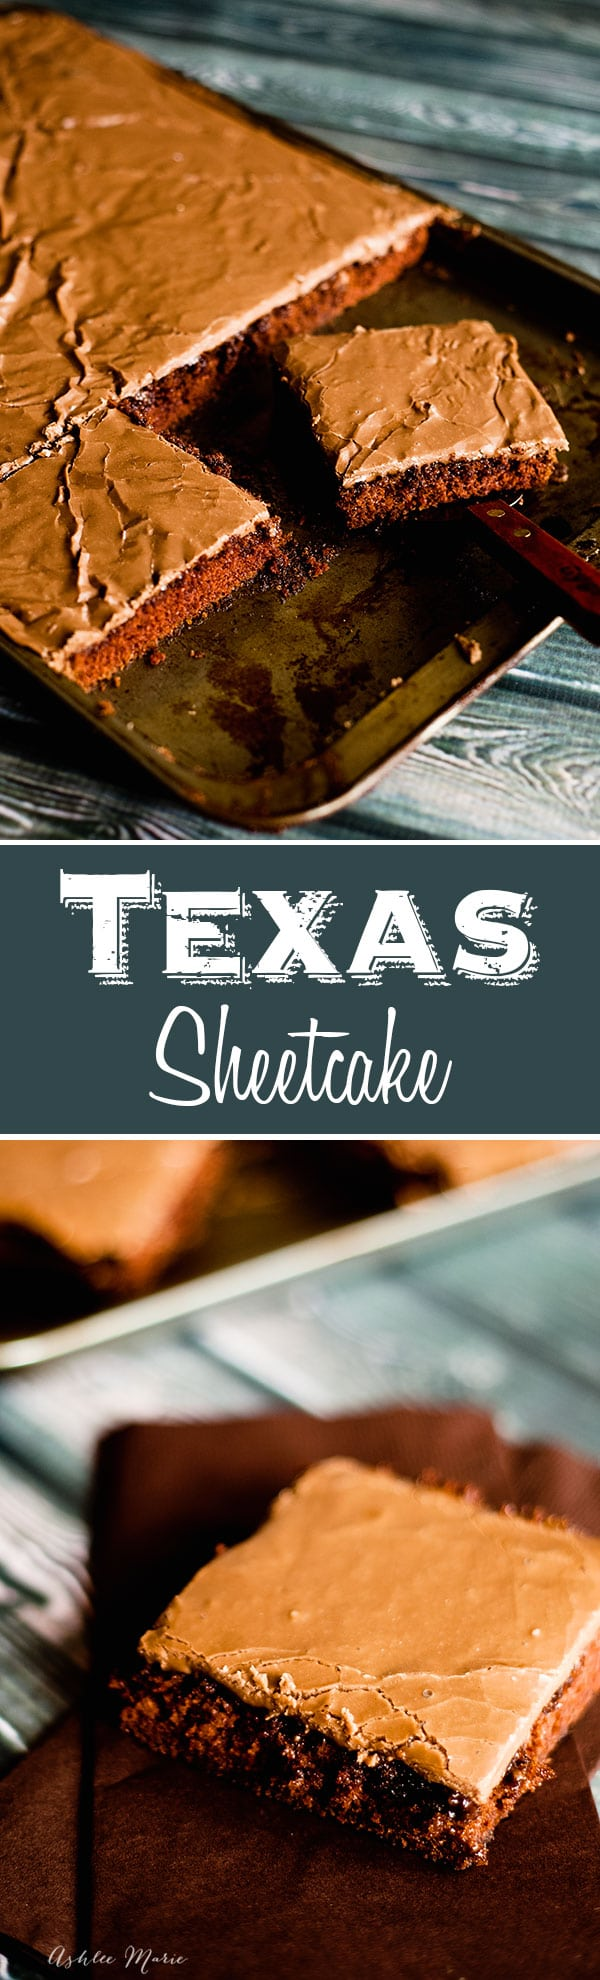 texas sheetcake is one of the easiest desserts to pull together and its something that everyone loves, chocolate sponge cake with rich chocolate frosting